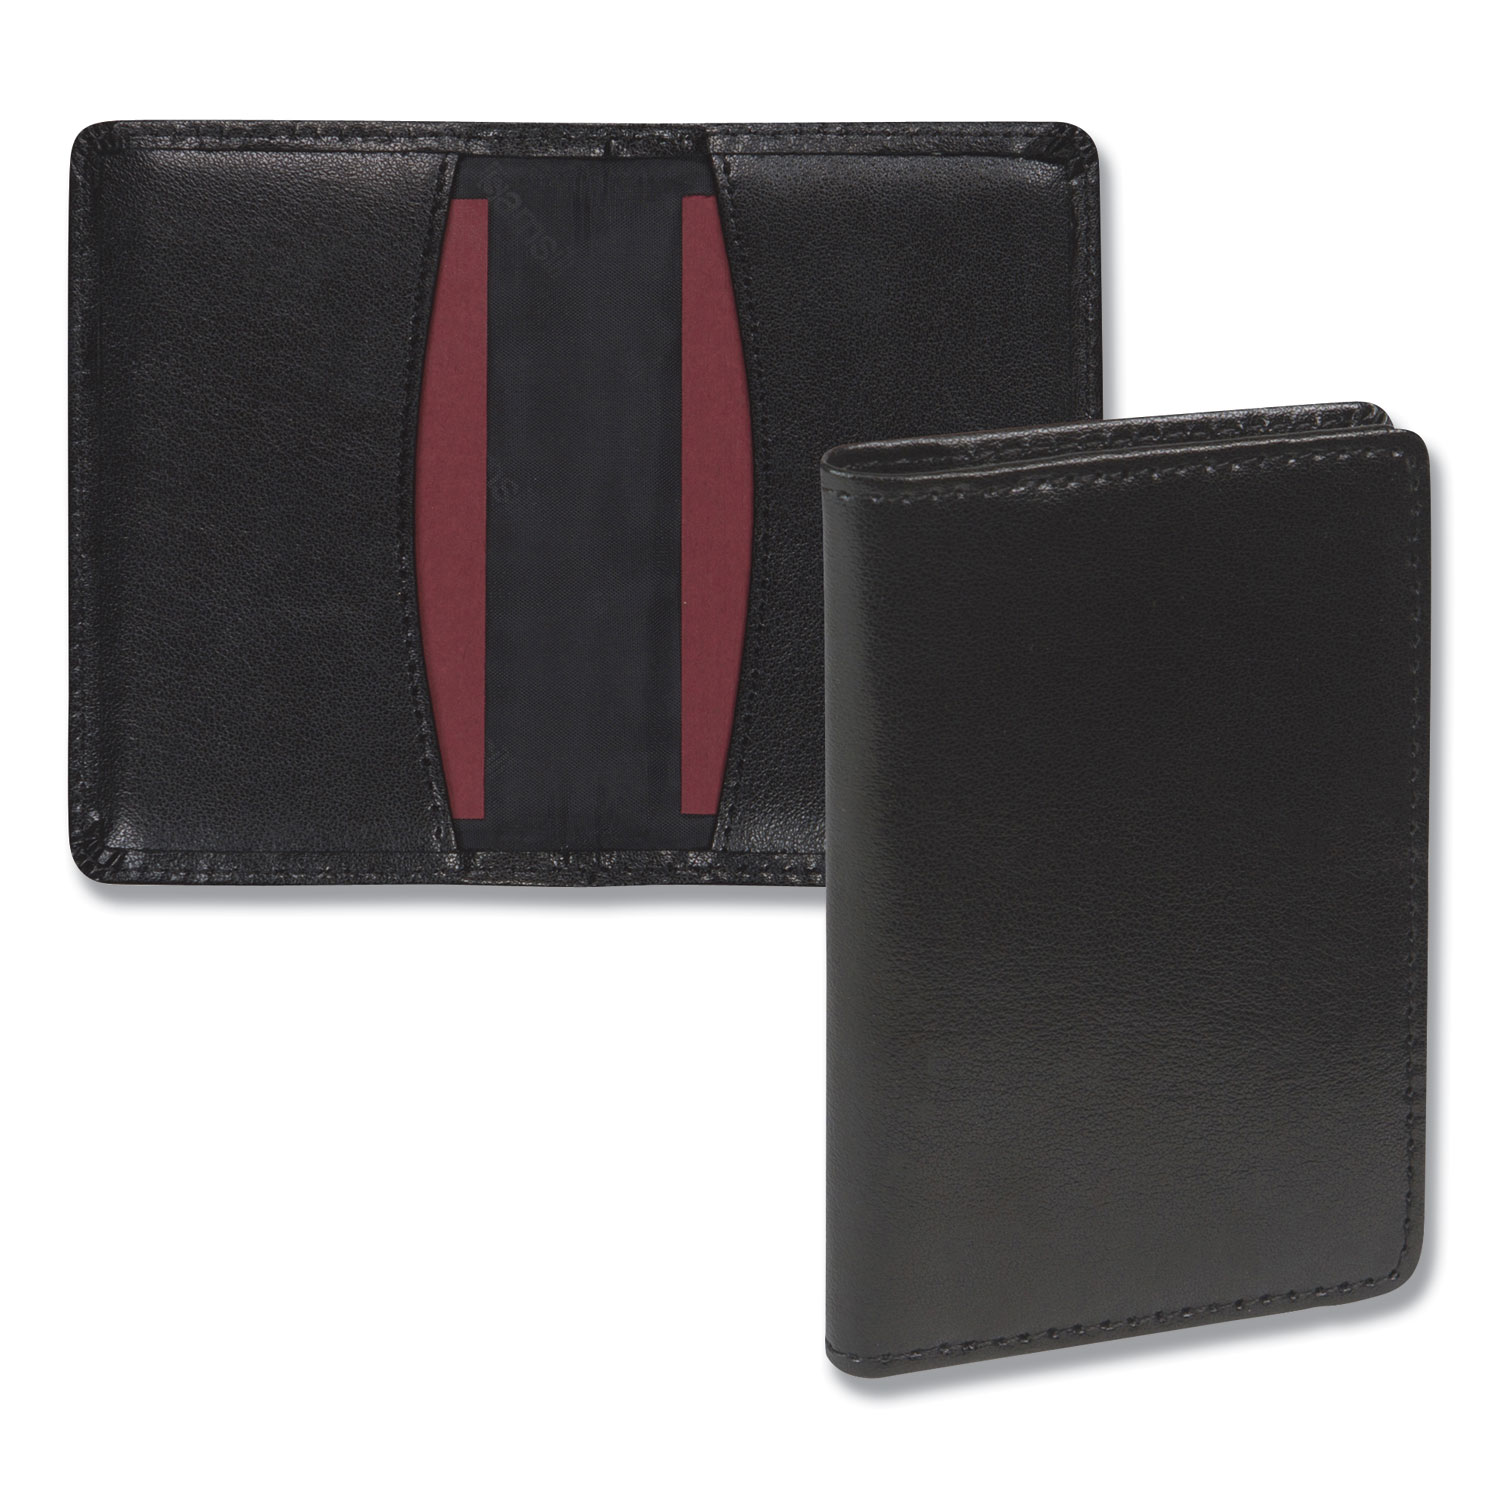 Regal Leather Business Card Wallet, 25 Card Capacity, 2 x 3 1/2 Cards, Black